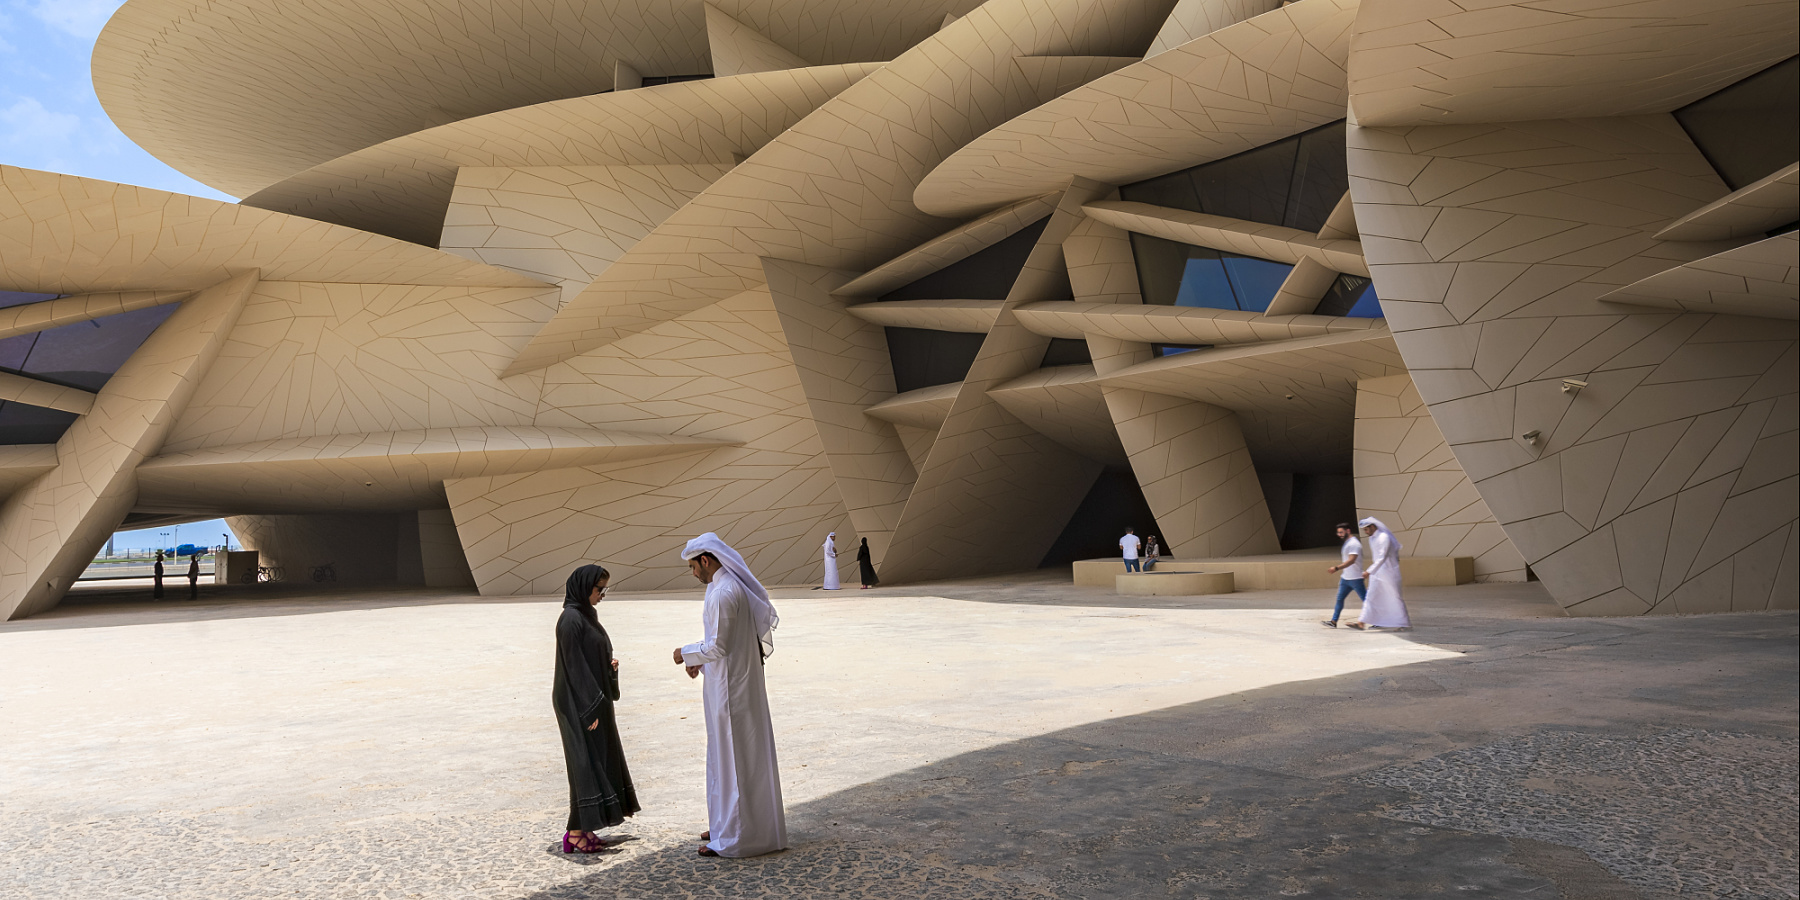 New National Museum of Qatar, Doha, Qatar